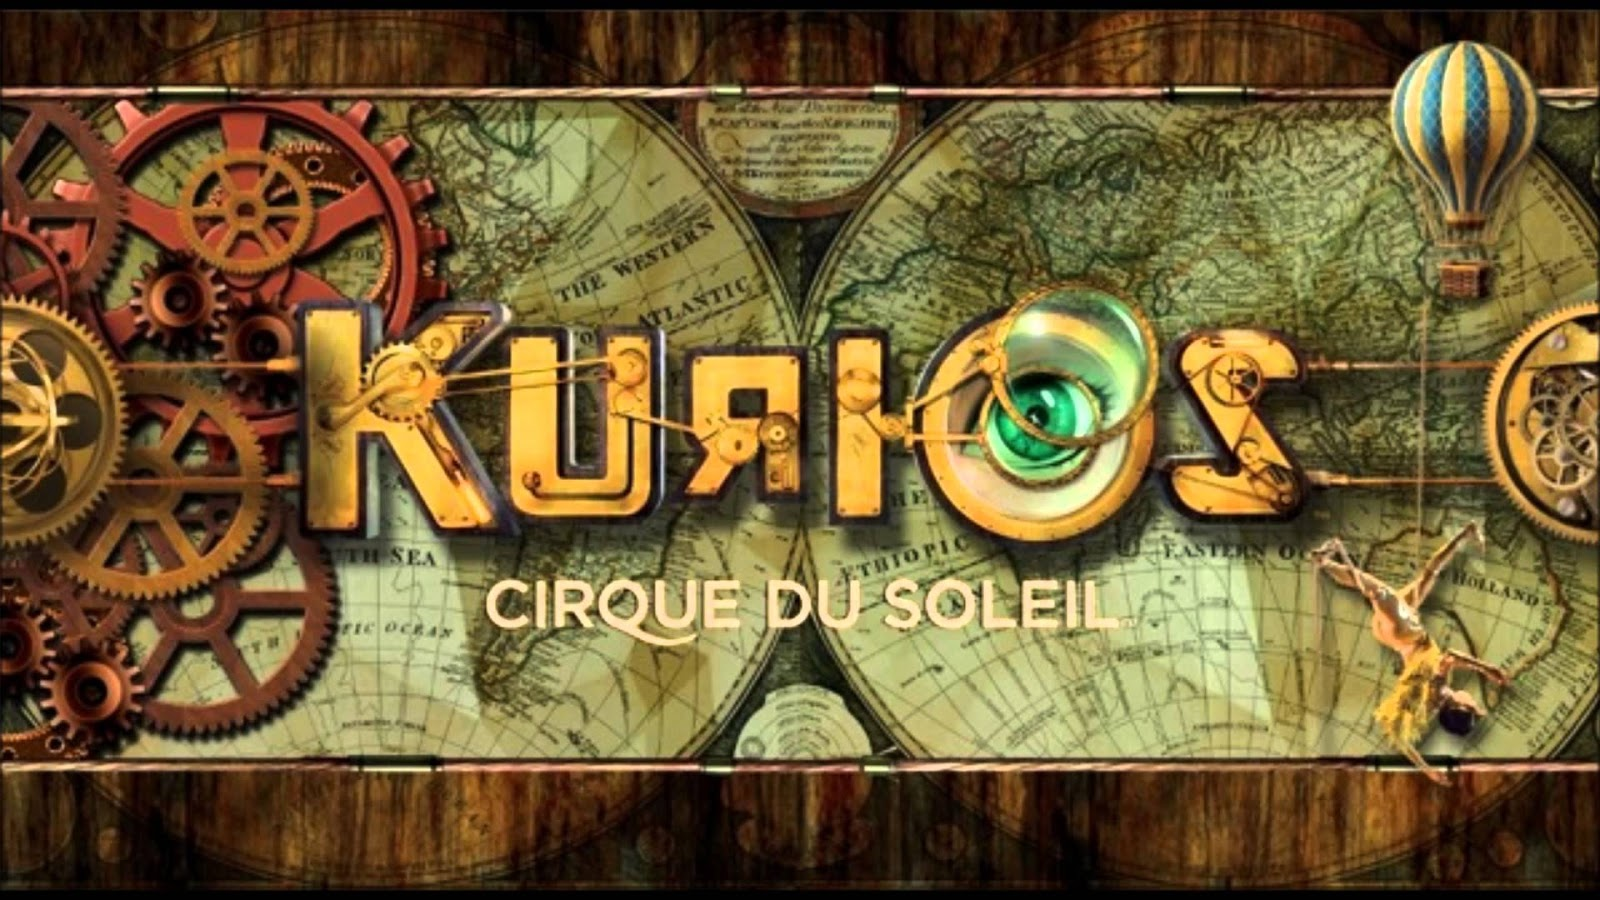 Chiil mama opening cirque du soleils kurios cabinet of here at chiil mama chiil live shows we adore the steampunk aesthetic gears circus arts and of course cirque du soleil so were extra stoked to see fandeluxe Images